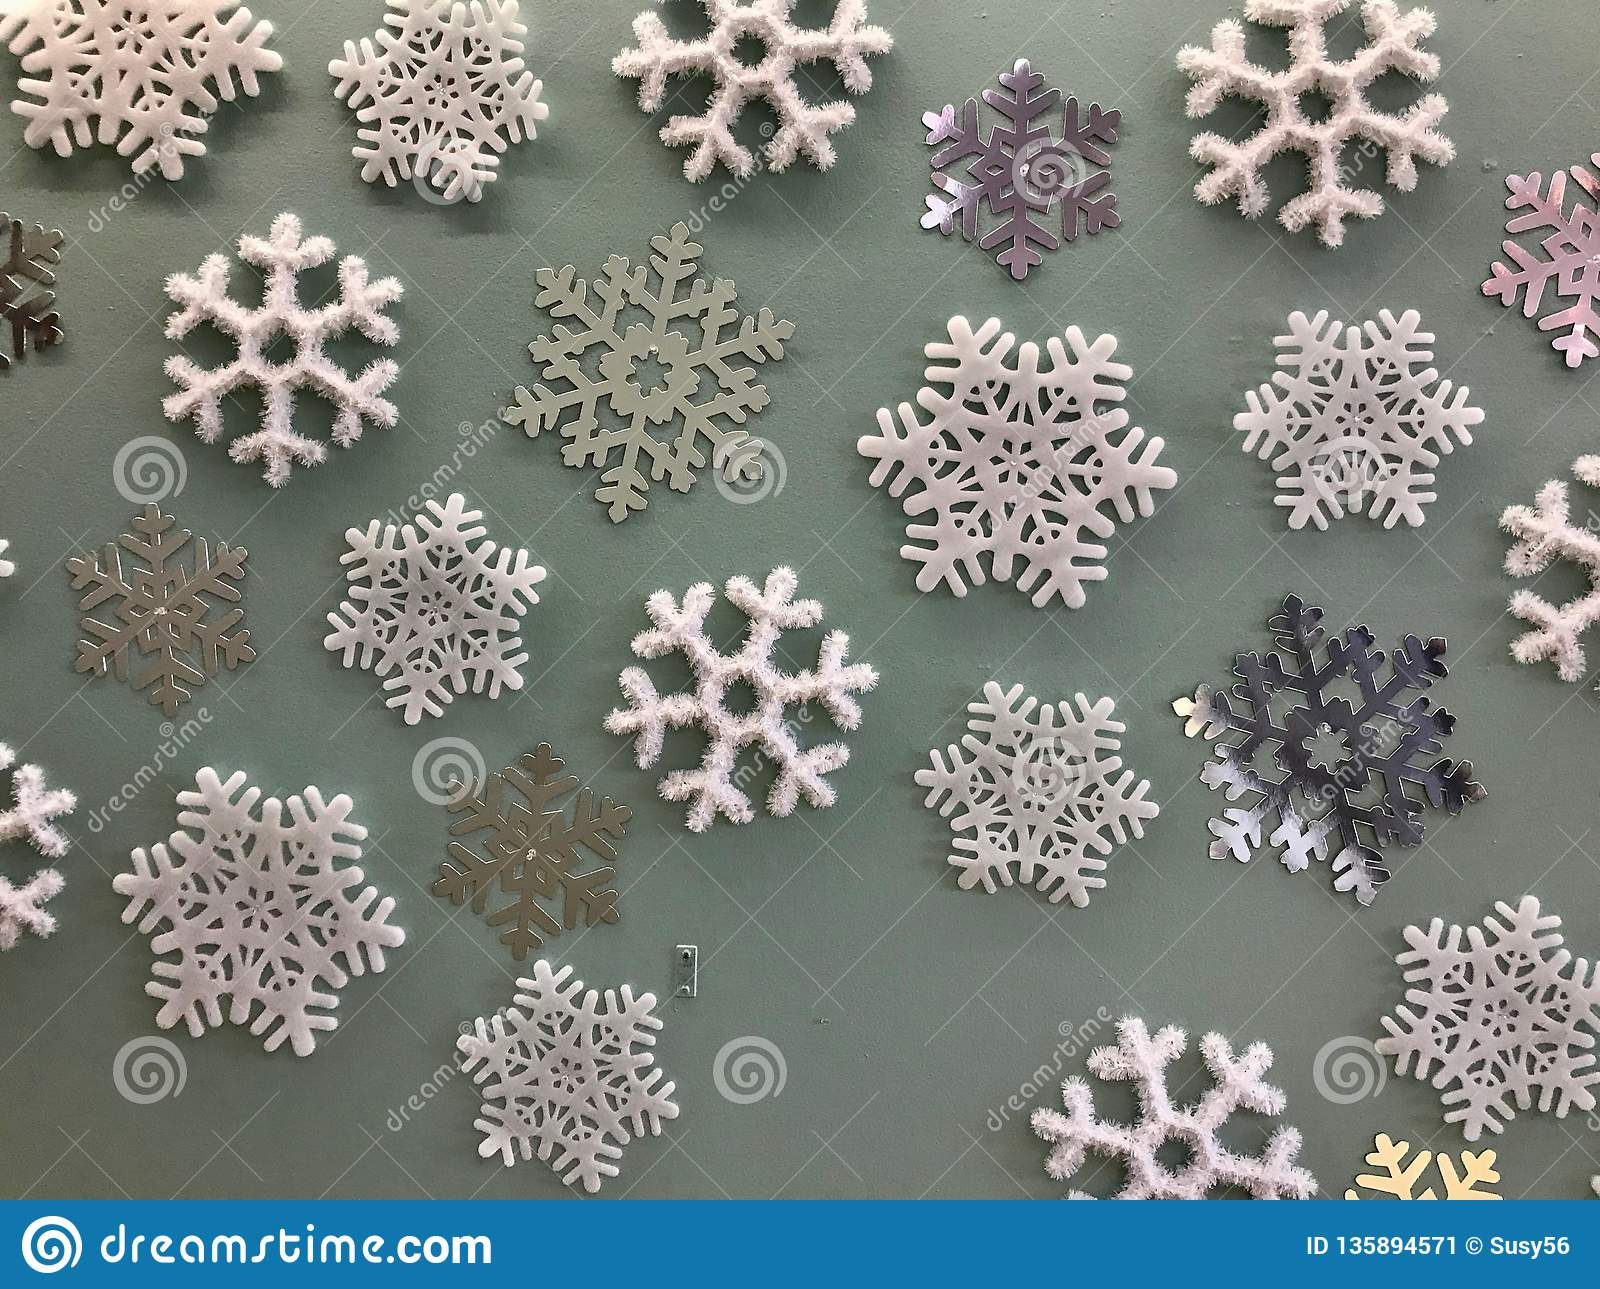 Giant Fake Snowflake Decorations On A Wall Stock Image Image Of